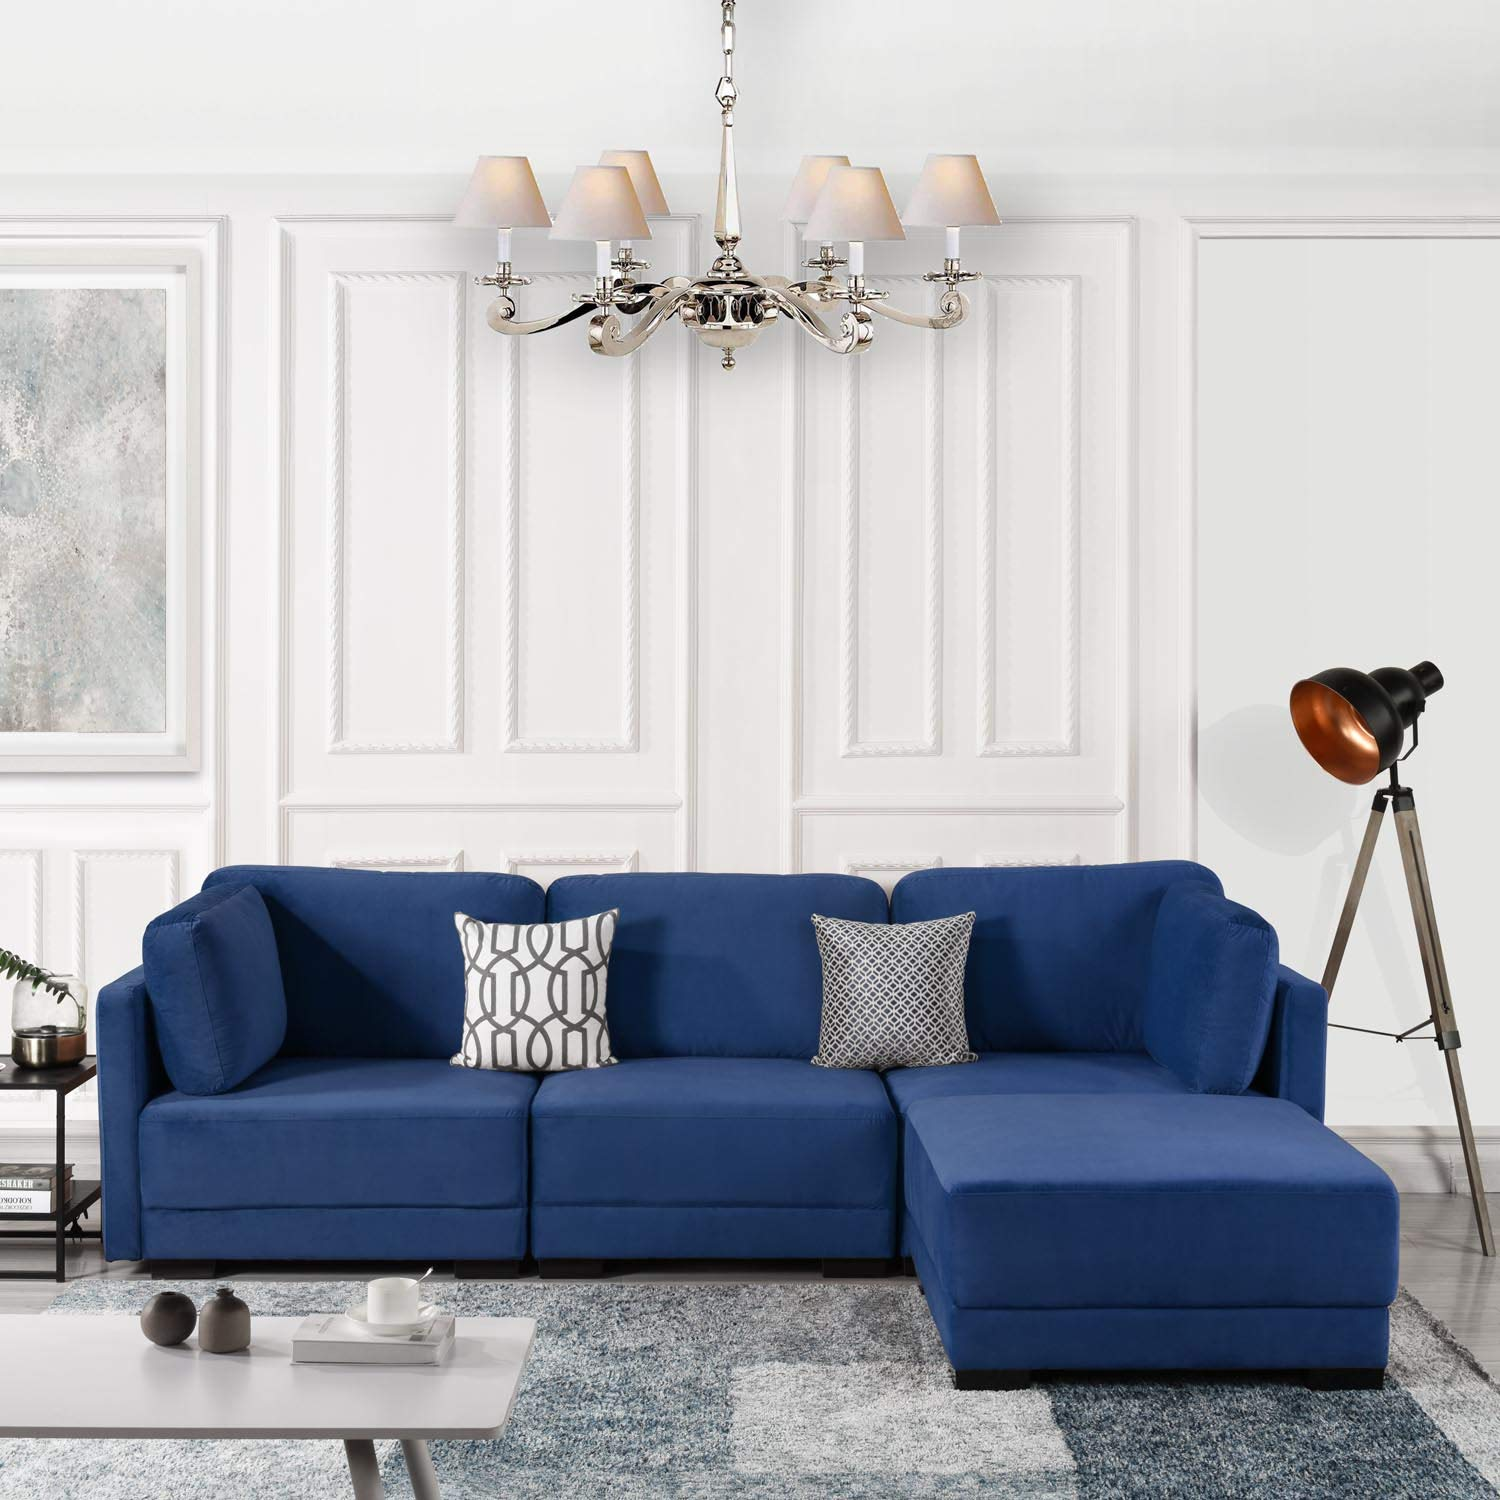 Excellent Navy Blue Modular Sectional Sofa Couch Convertible Sofa Sectional Reversible Chaise Ottoman 3 Piece Custom Couch Feature Modern L Shaped Sectional Uwap Interior Chair Design Uwaporg